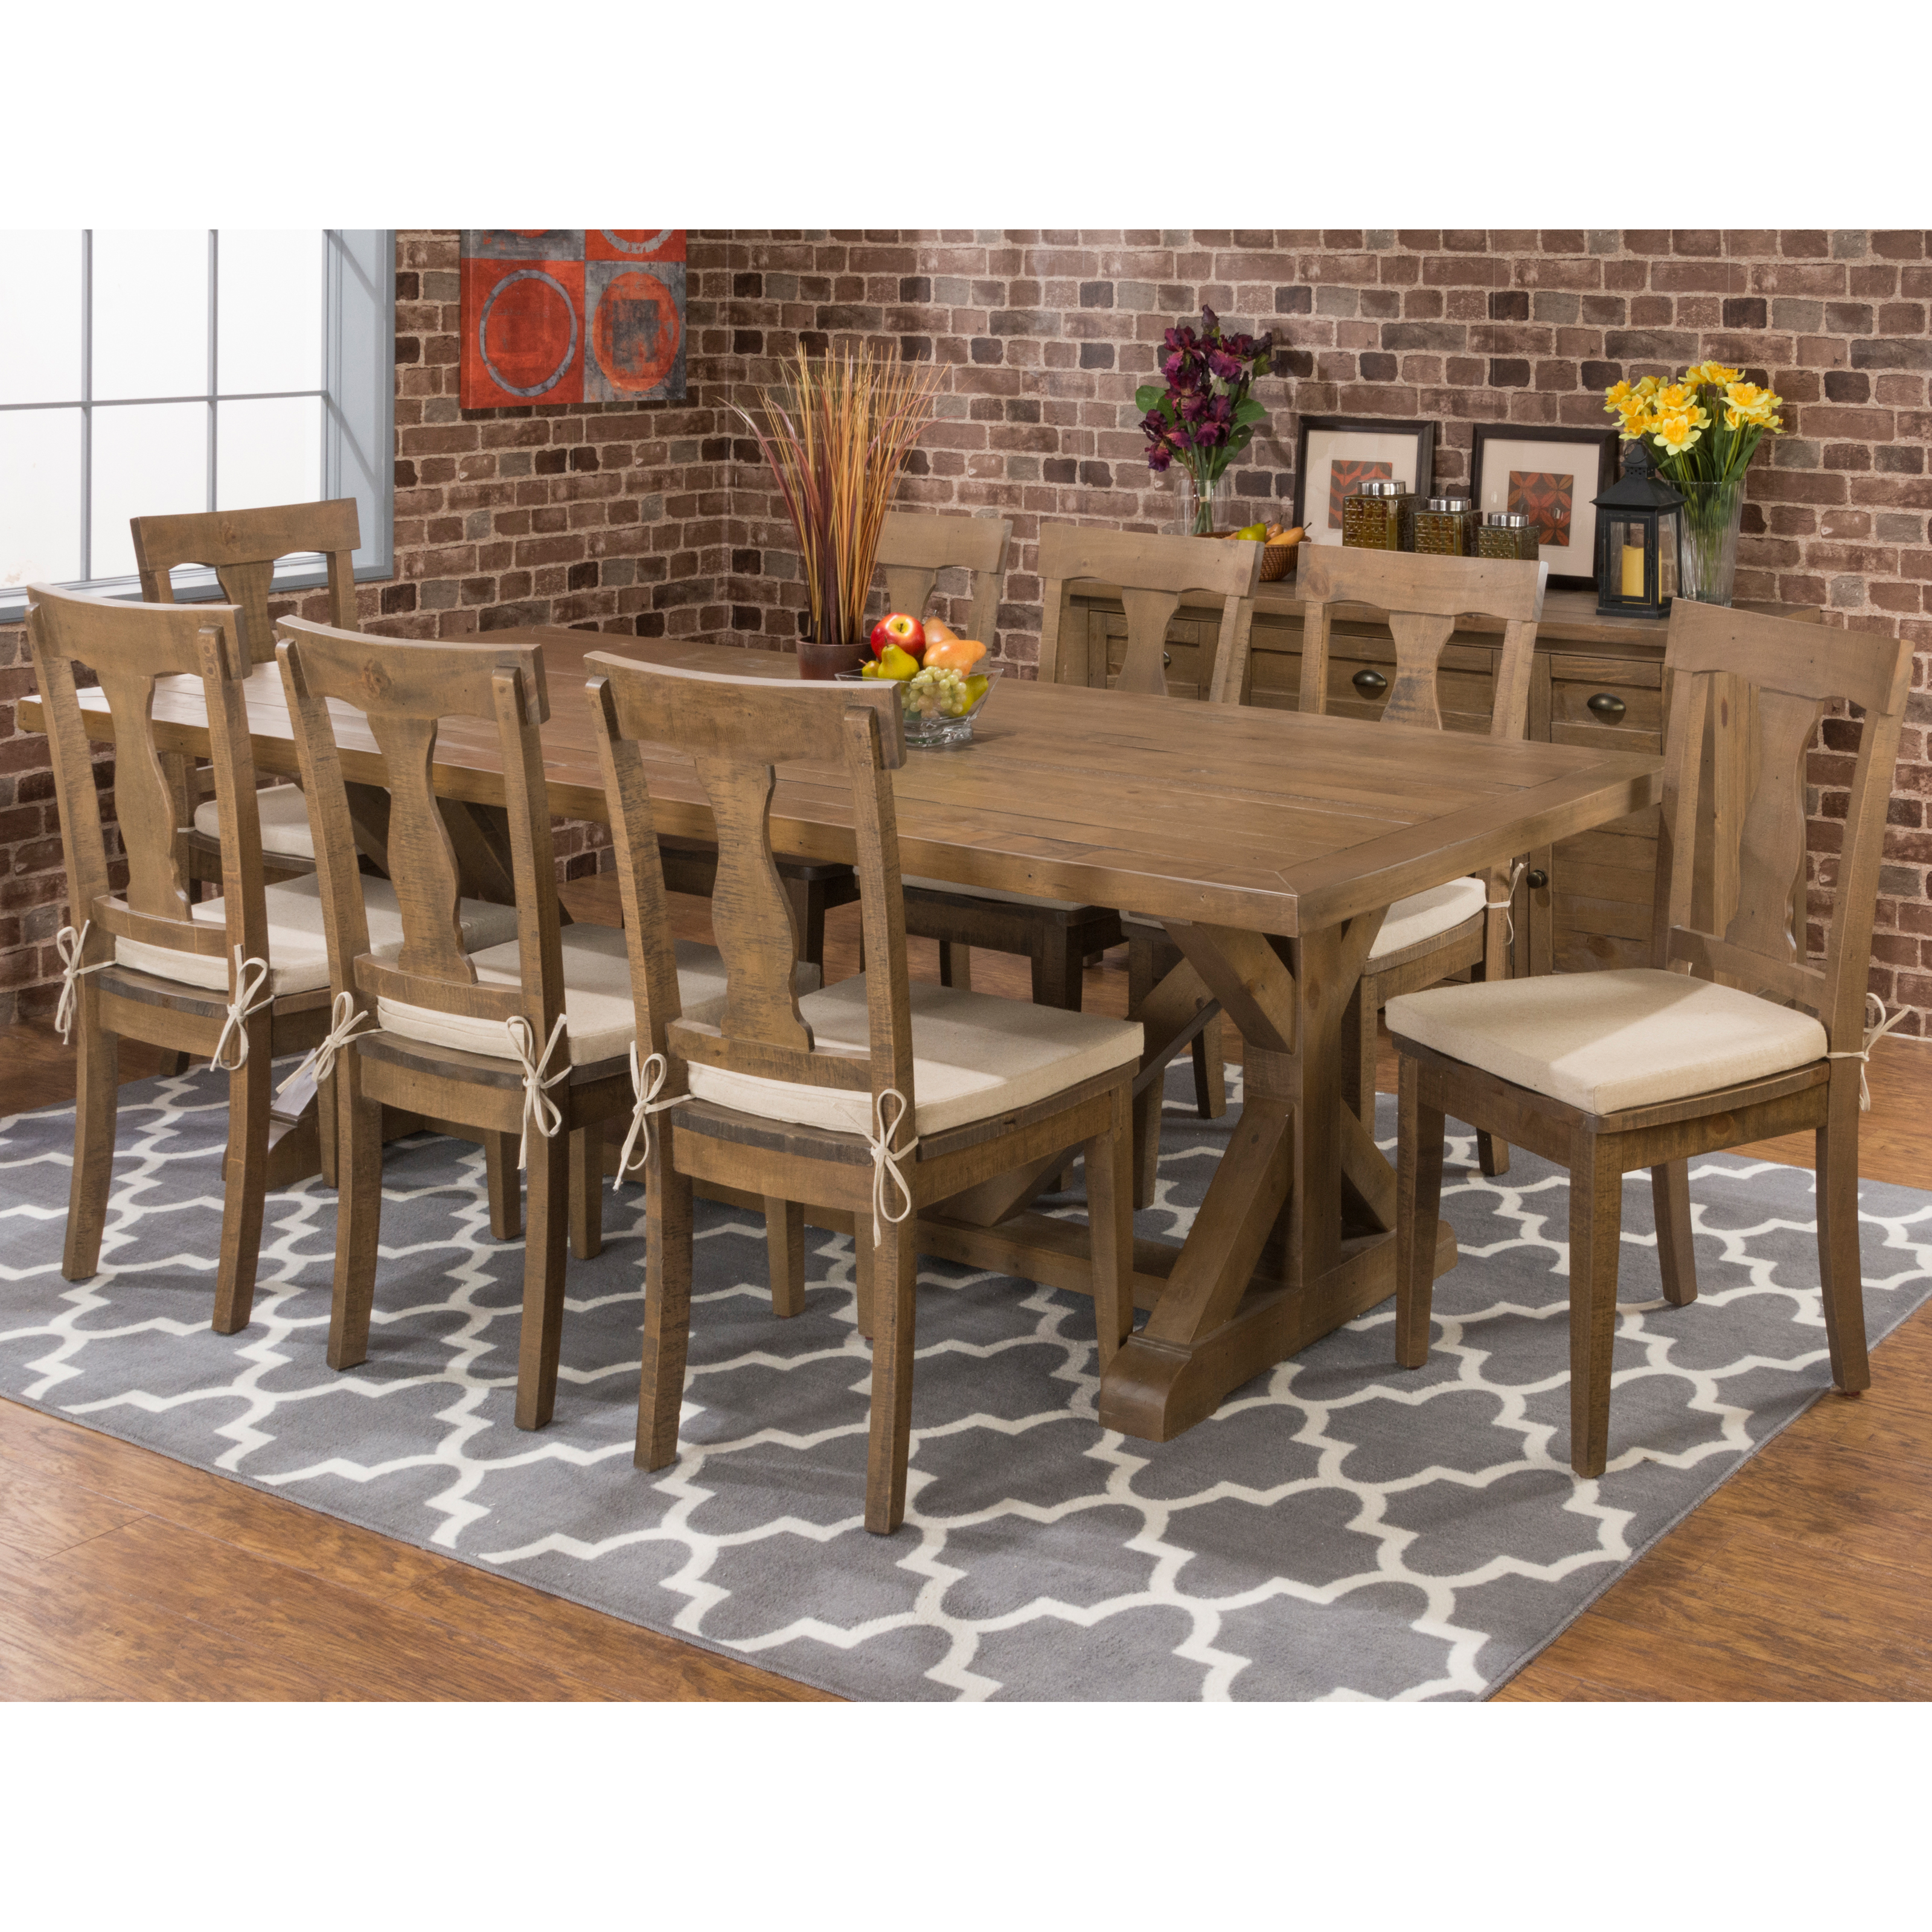 Distressed dining table - Trestle Dining Table With 18 In Butterfly Leaf Hayneedle